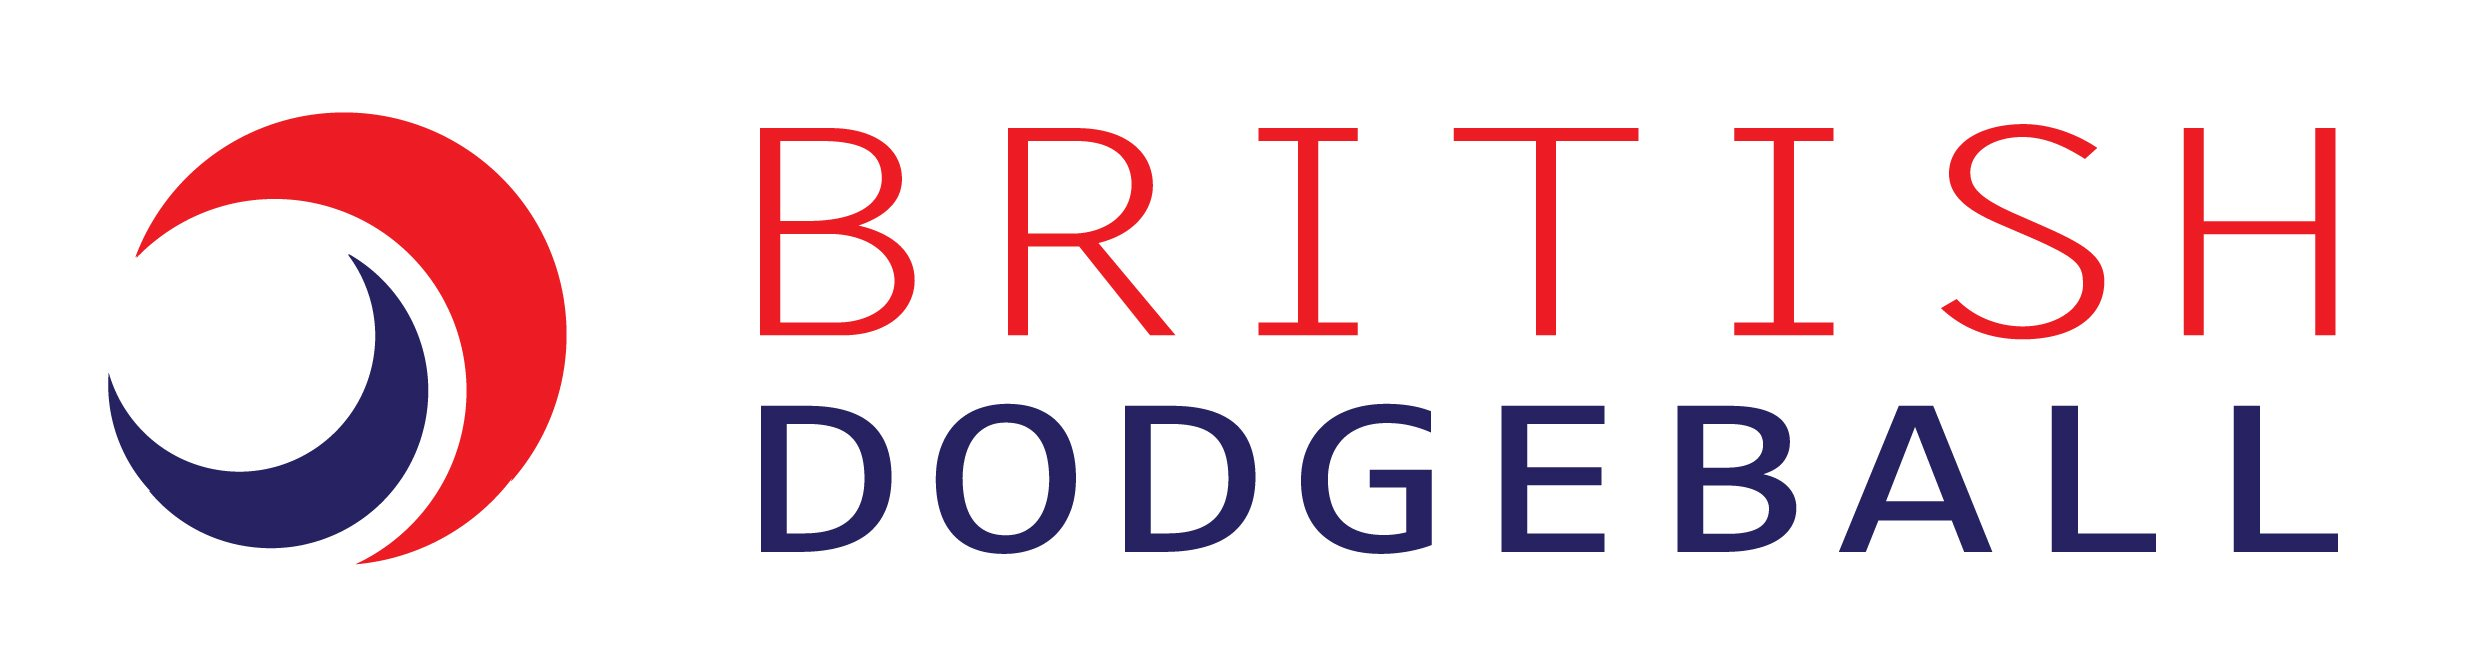 British dodgeball final logo1